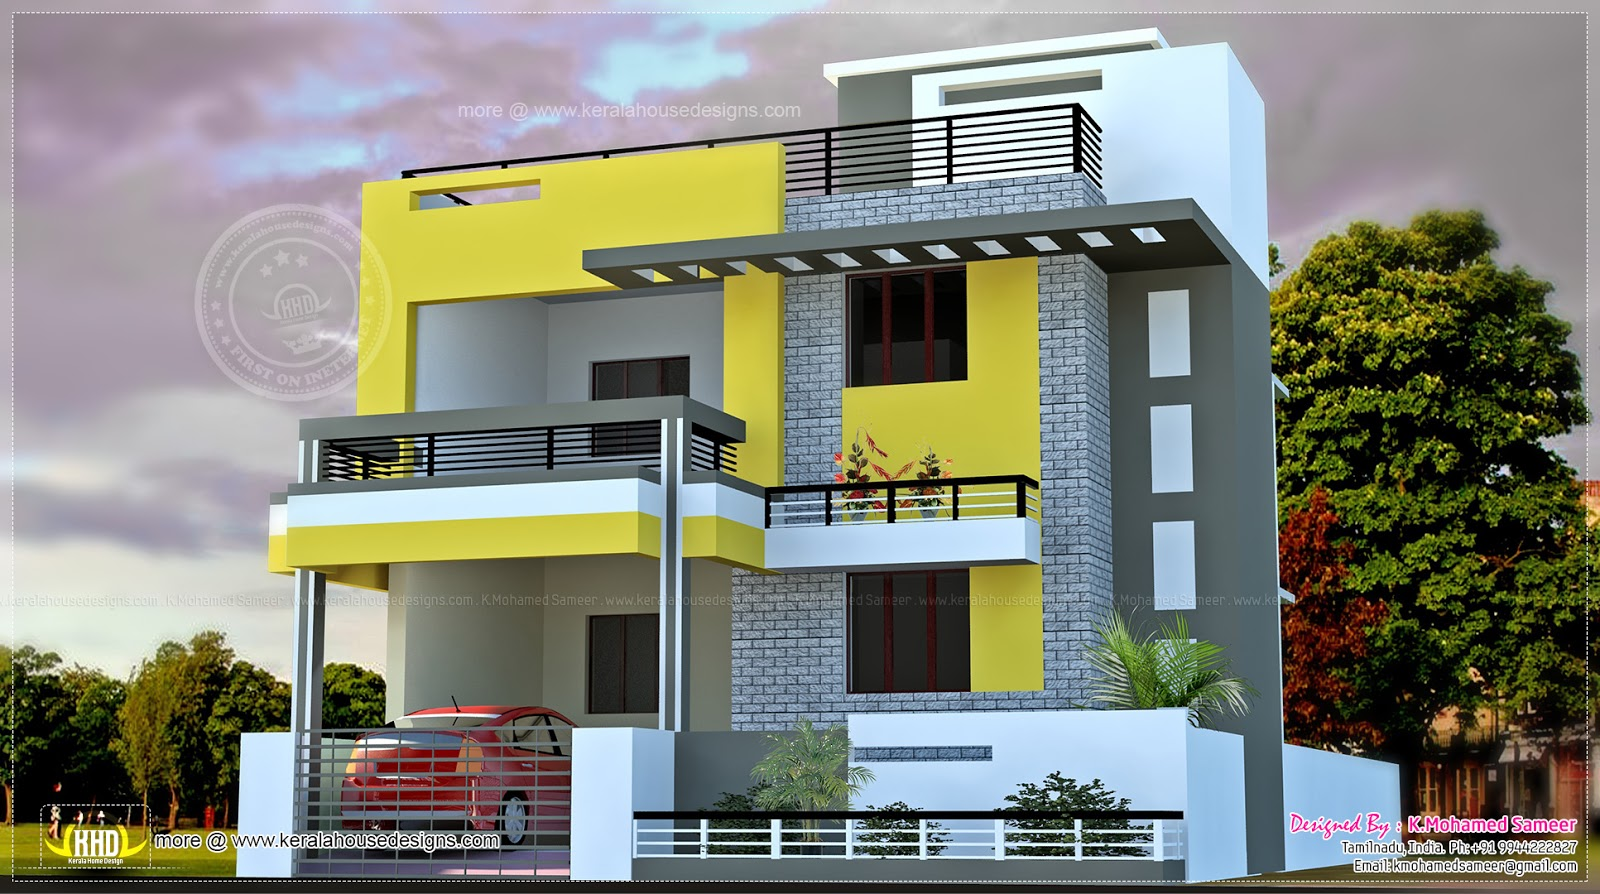 June 2013 kerala home design and floor plans for South indian small house designs